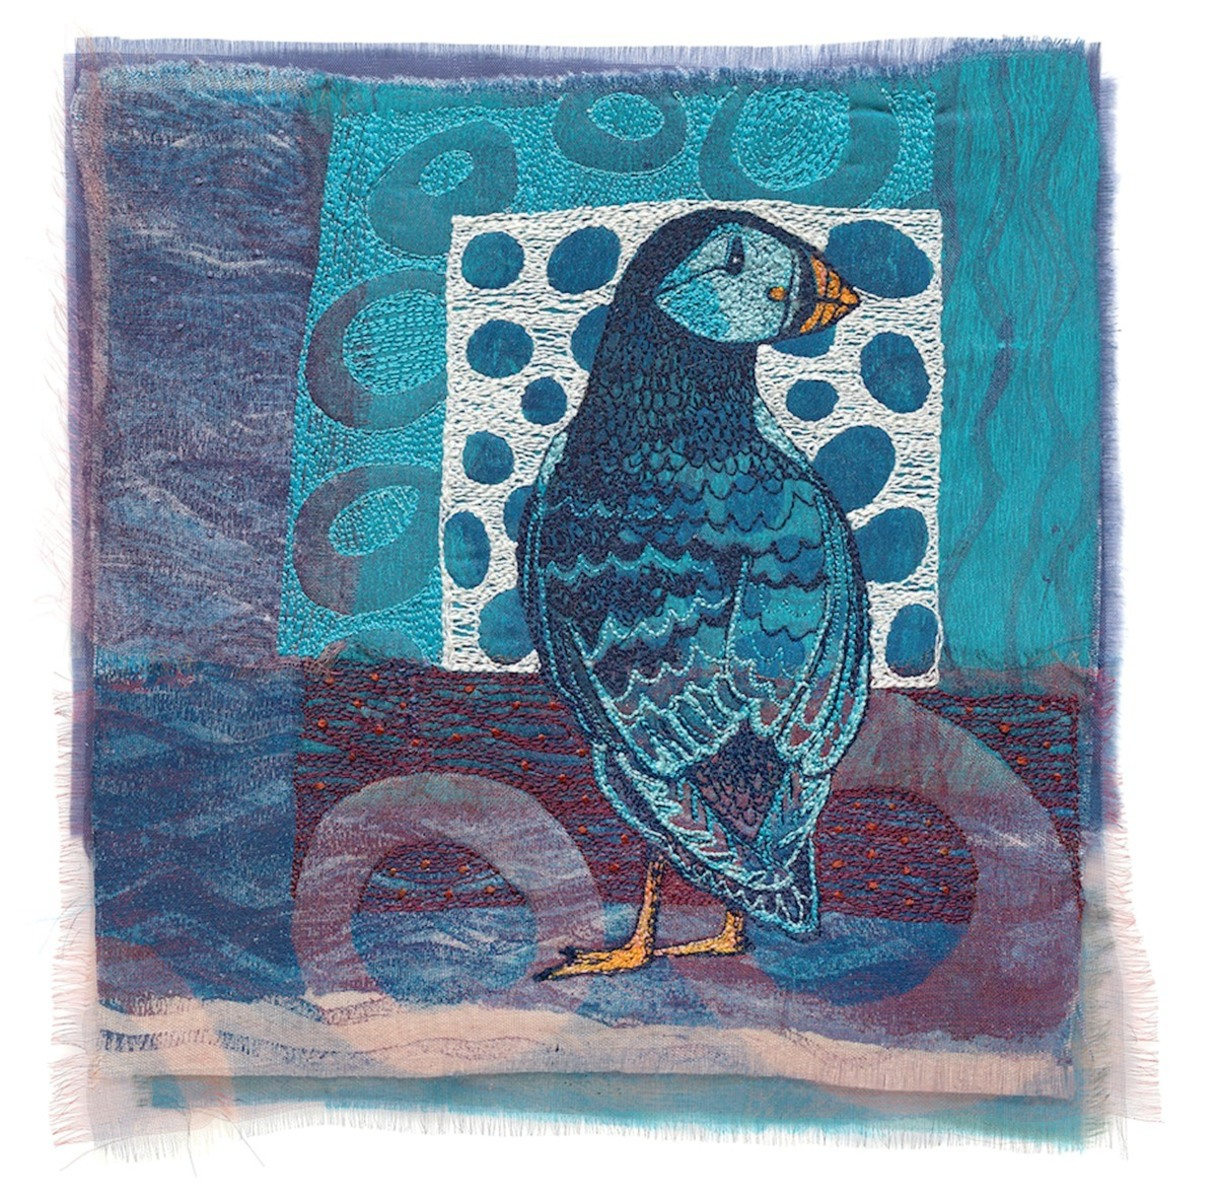 Puffin in Blue - Giclee Print